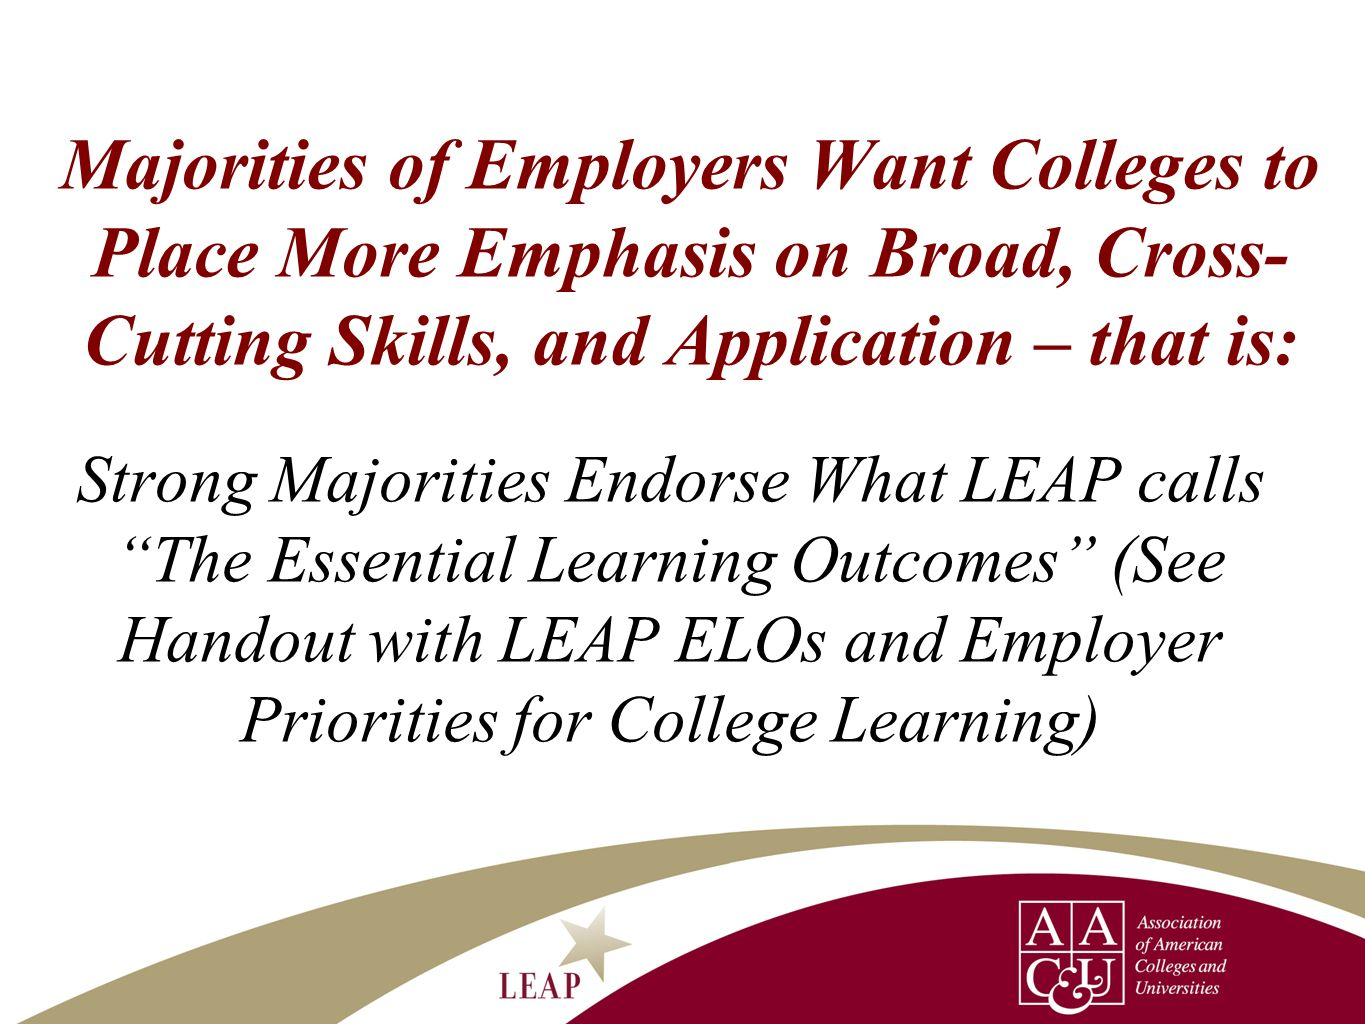 Majorities of Employers Want Colleges to Place More Emphasis on Broad, Cross- Cutting Skills, and Application – that is: Strong Majorities Endorse Wha